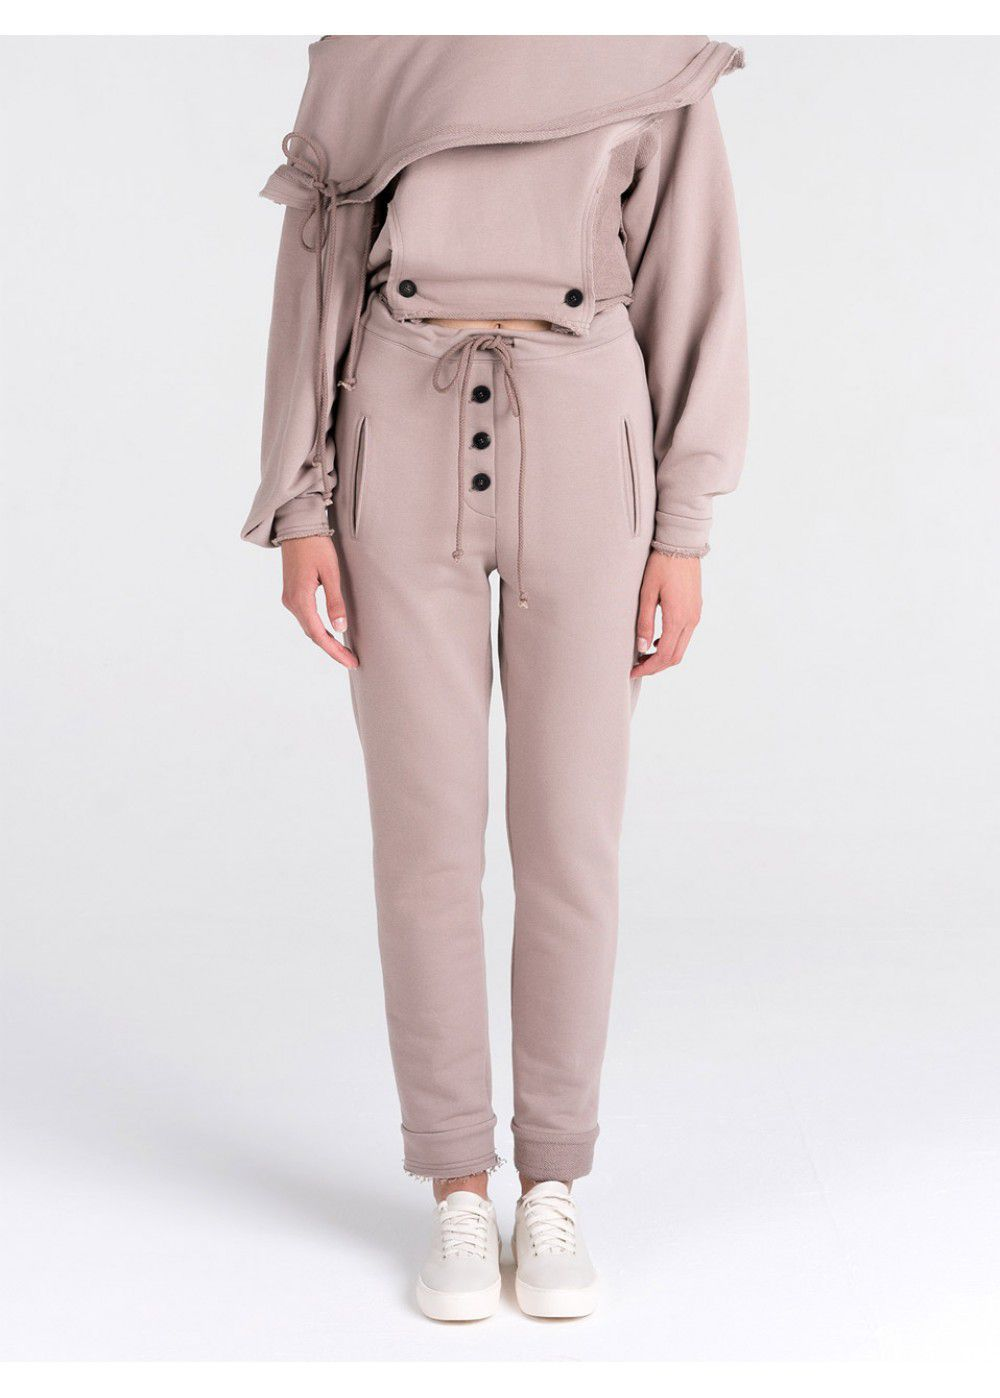 Ruban Drawstring Pants in Beige